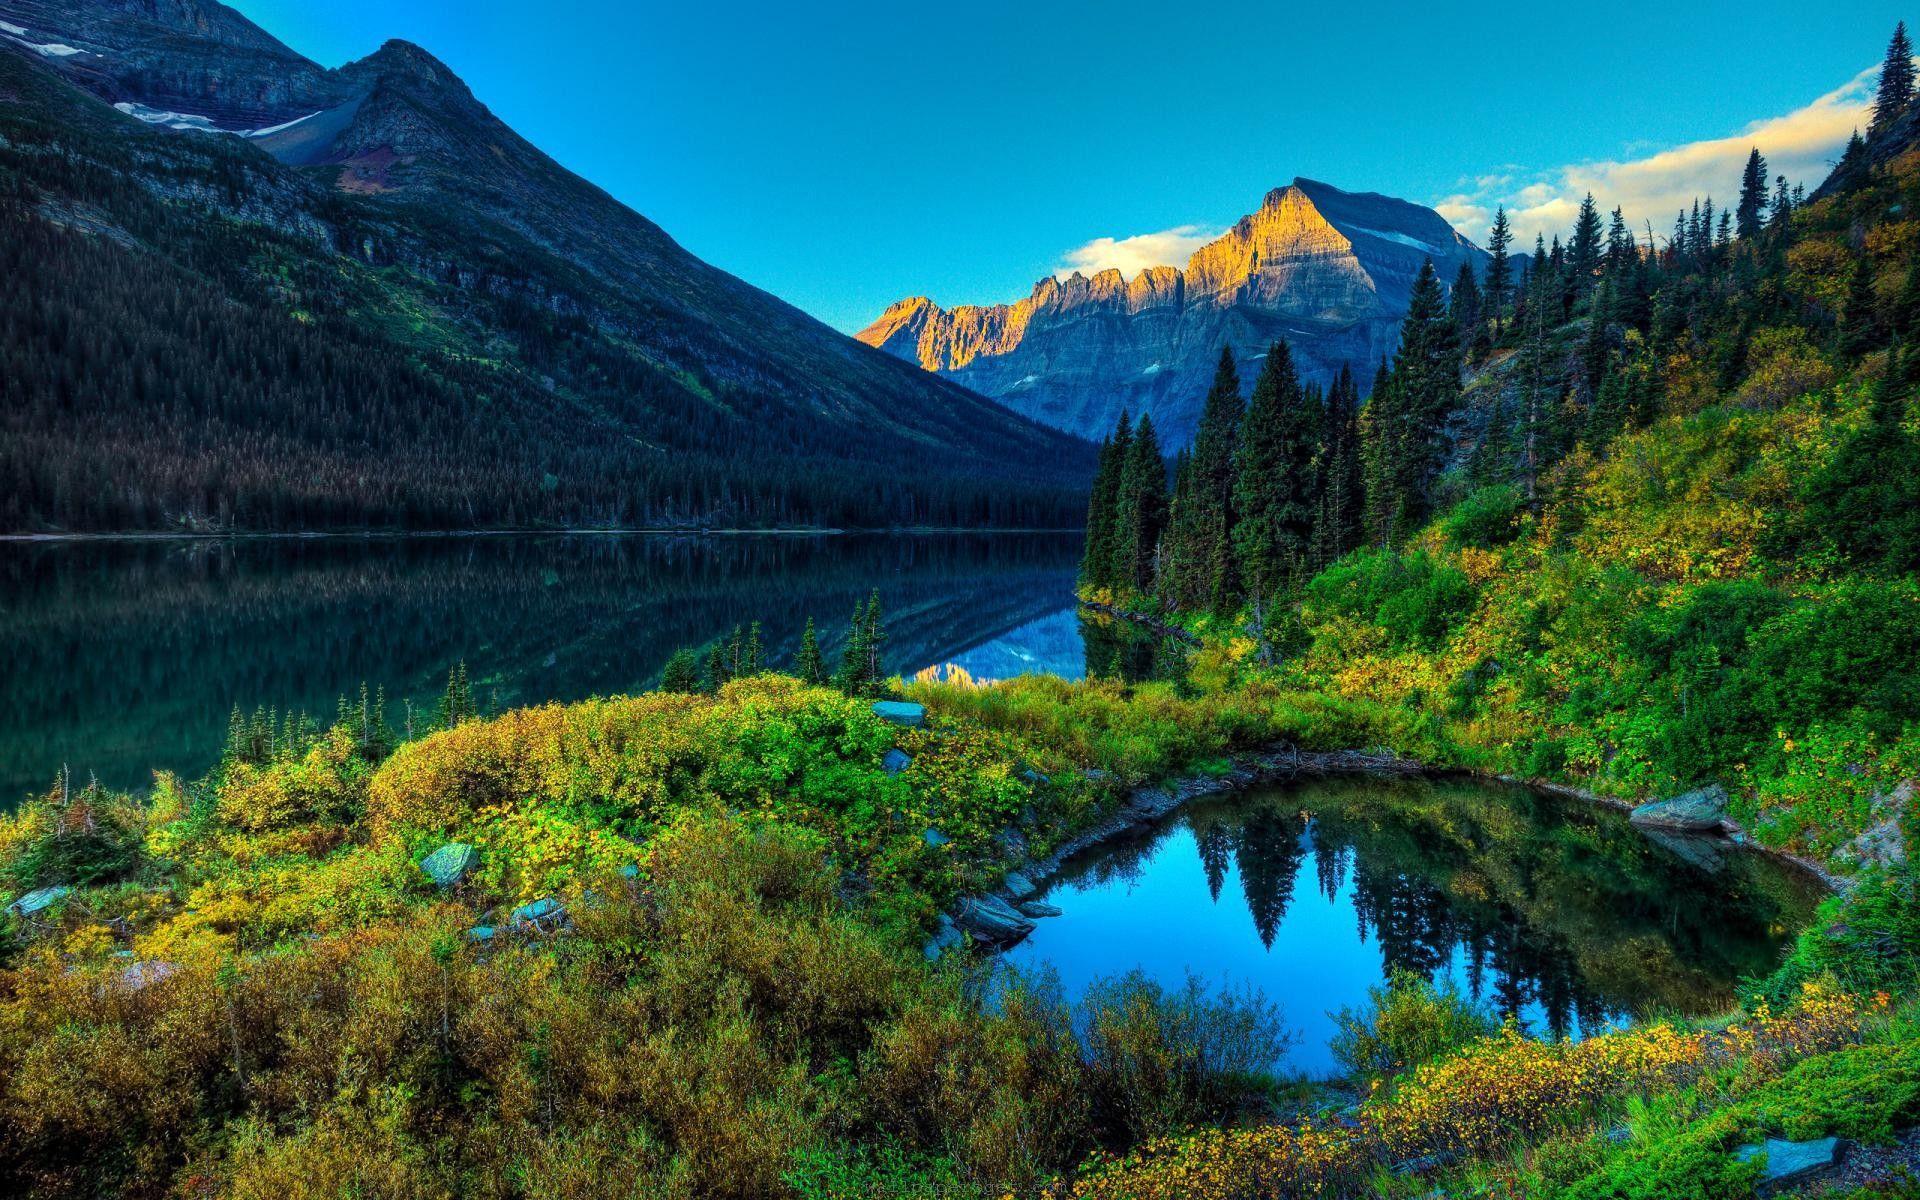 Beautiful Mountain River Forest Natural 1920x1200 Px Hd Scenery Wallpaper Landscape Wallpaper Scenery